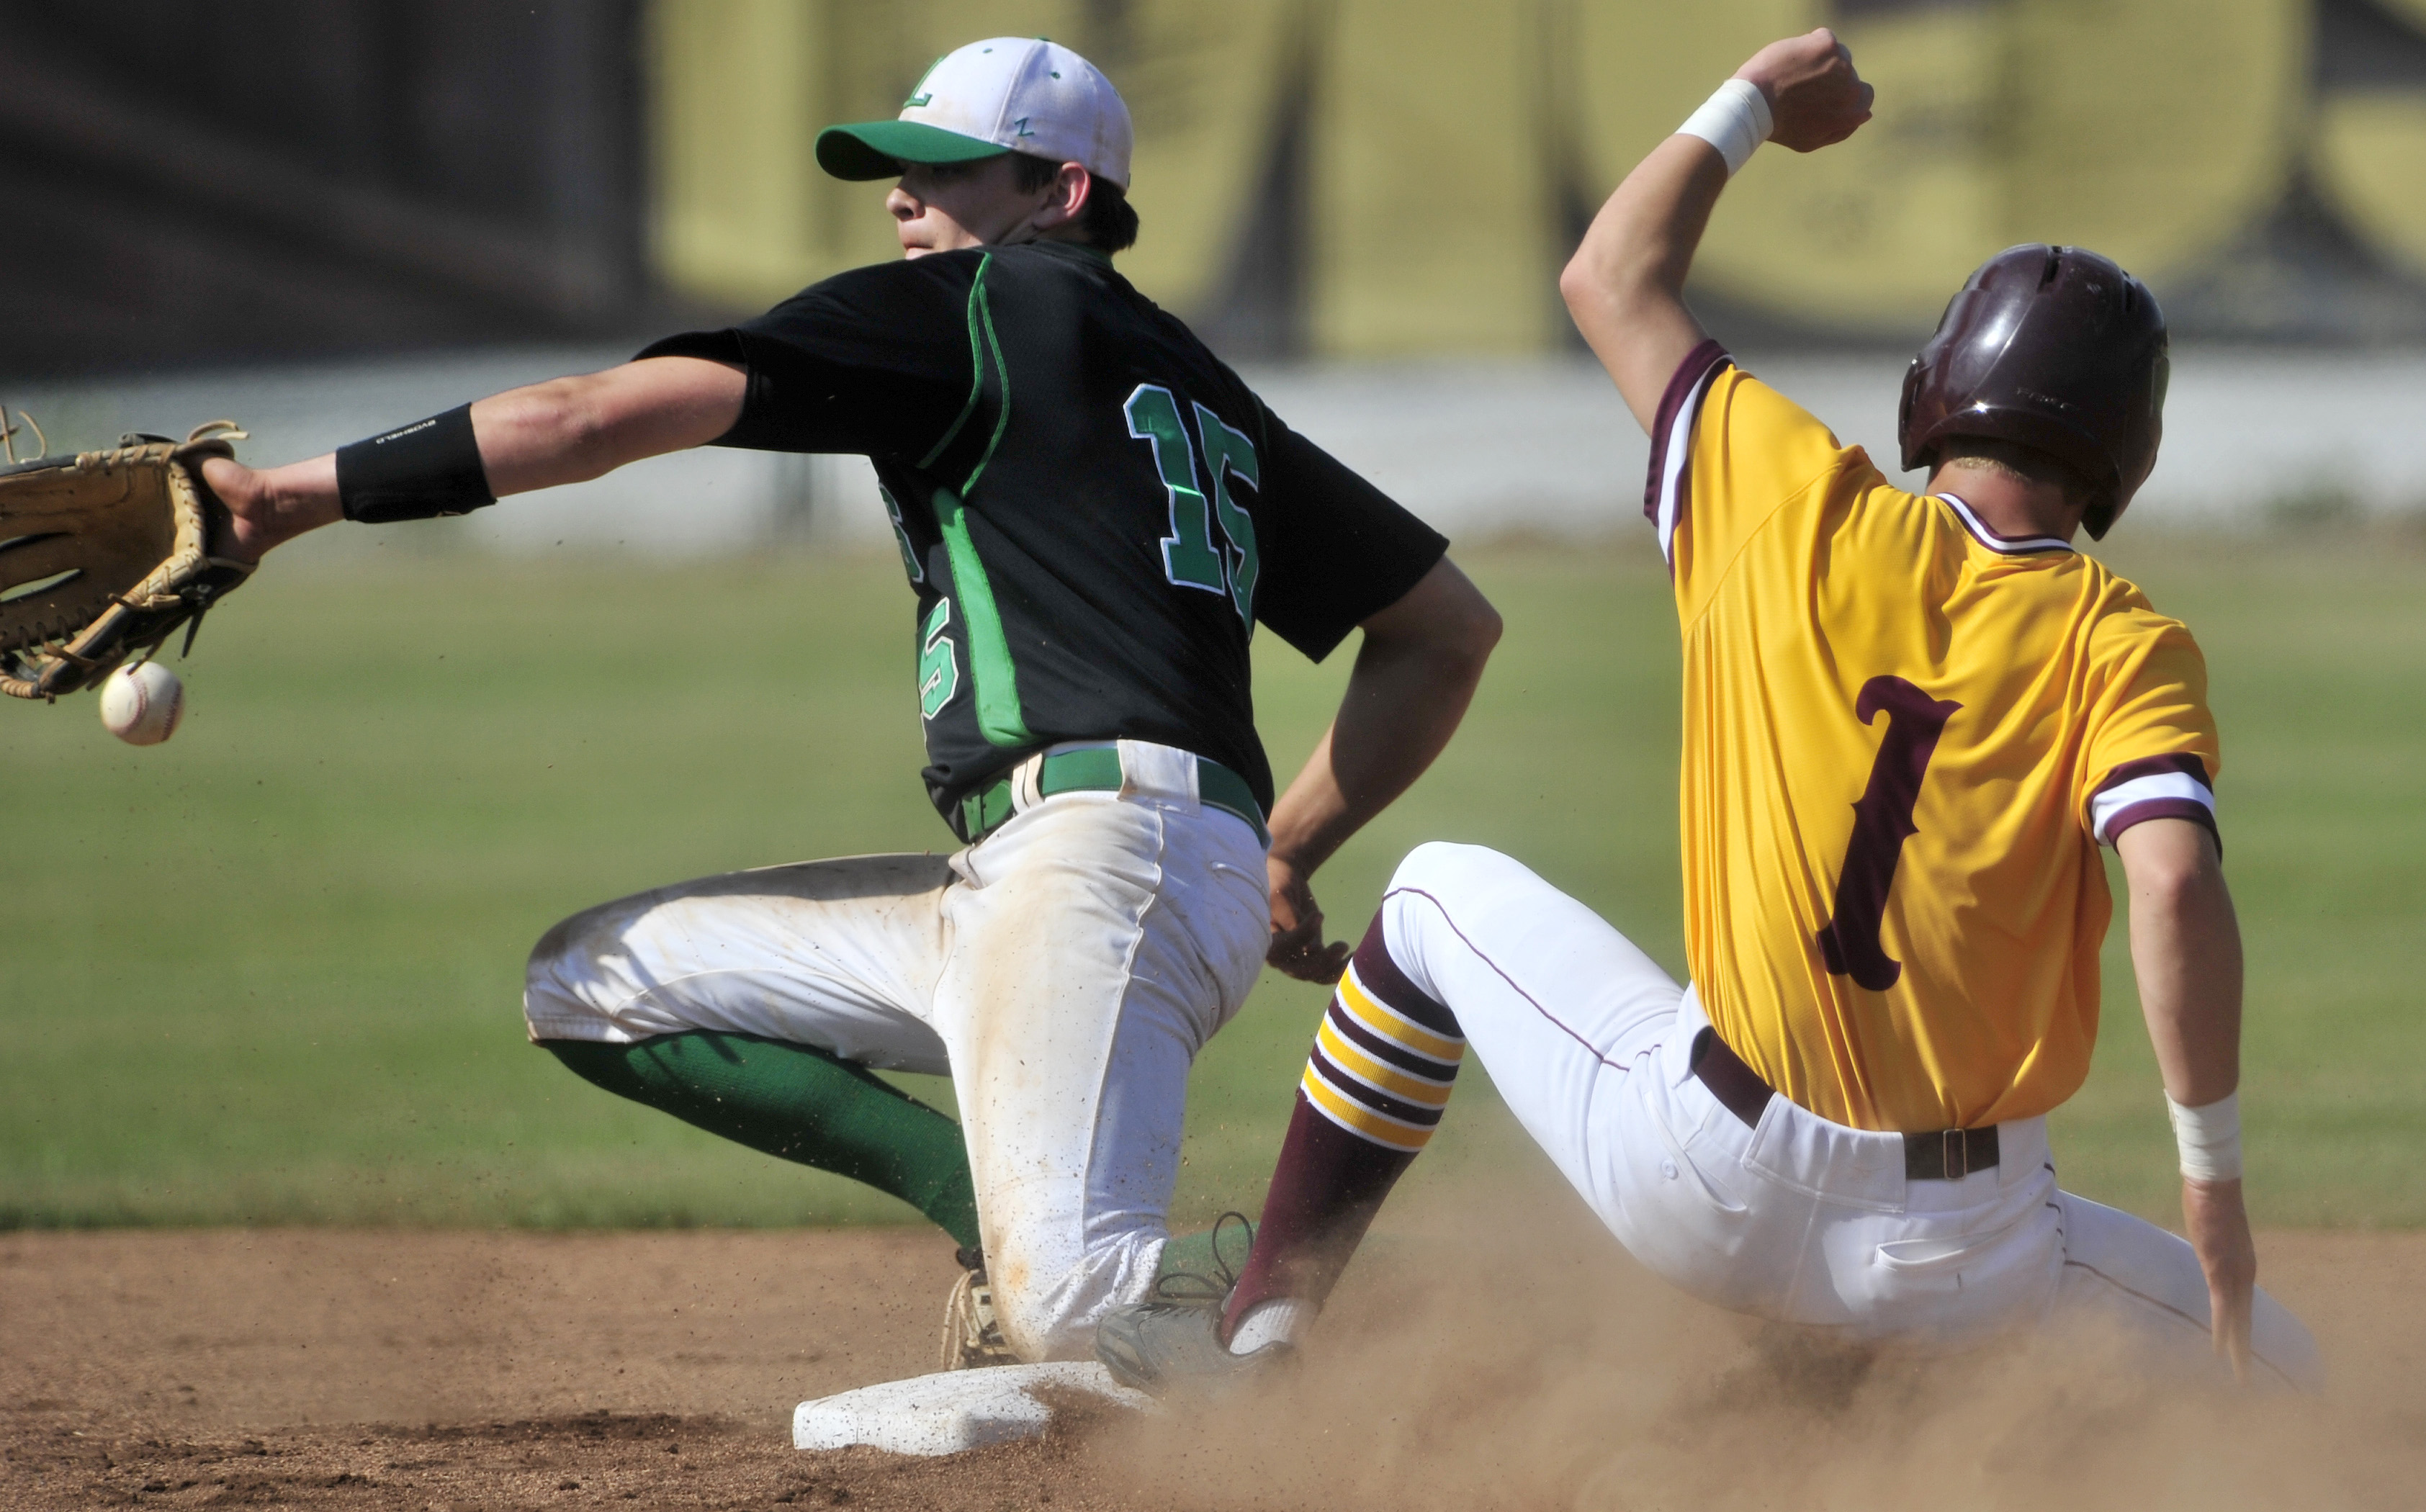 Leeds Greenwave - Madison Academy Mustangs Playoff Baseball